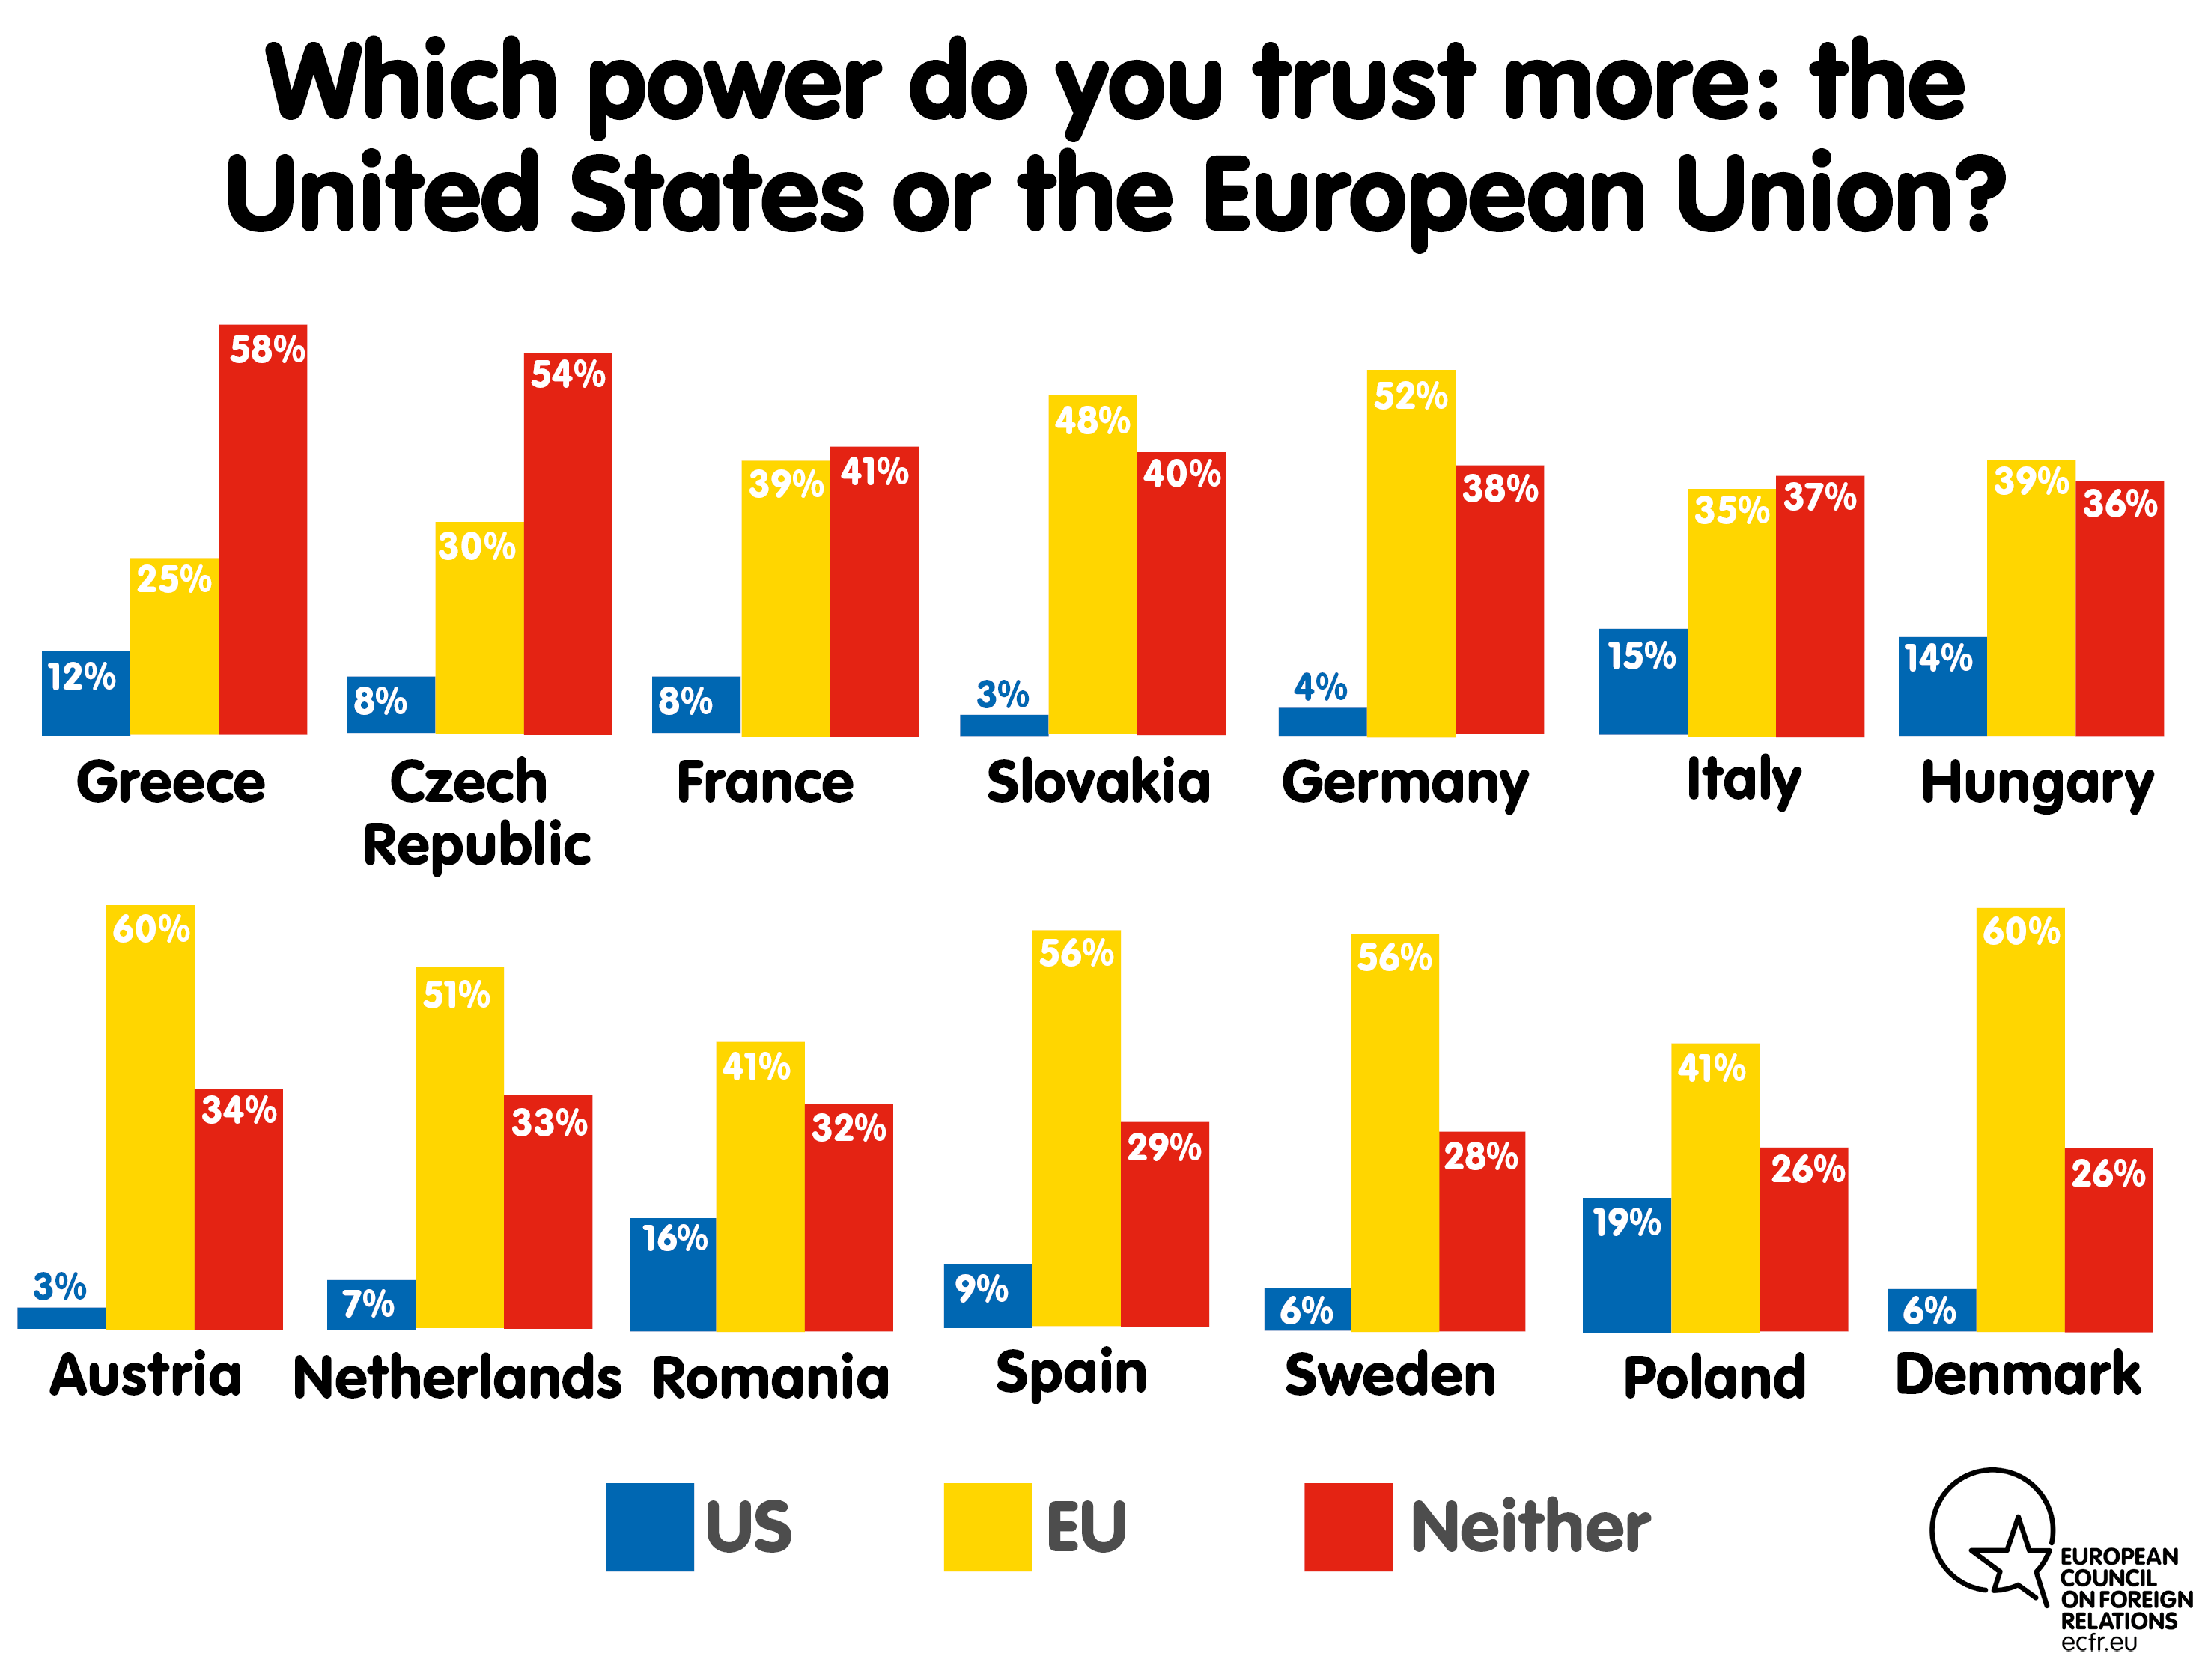 Which power do you trust more: the United States or the European Union?